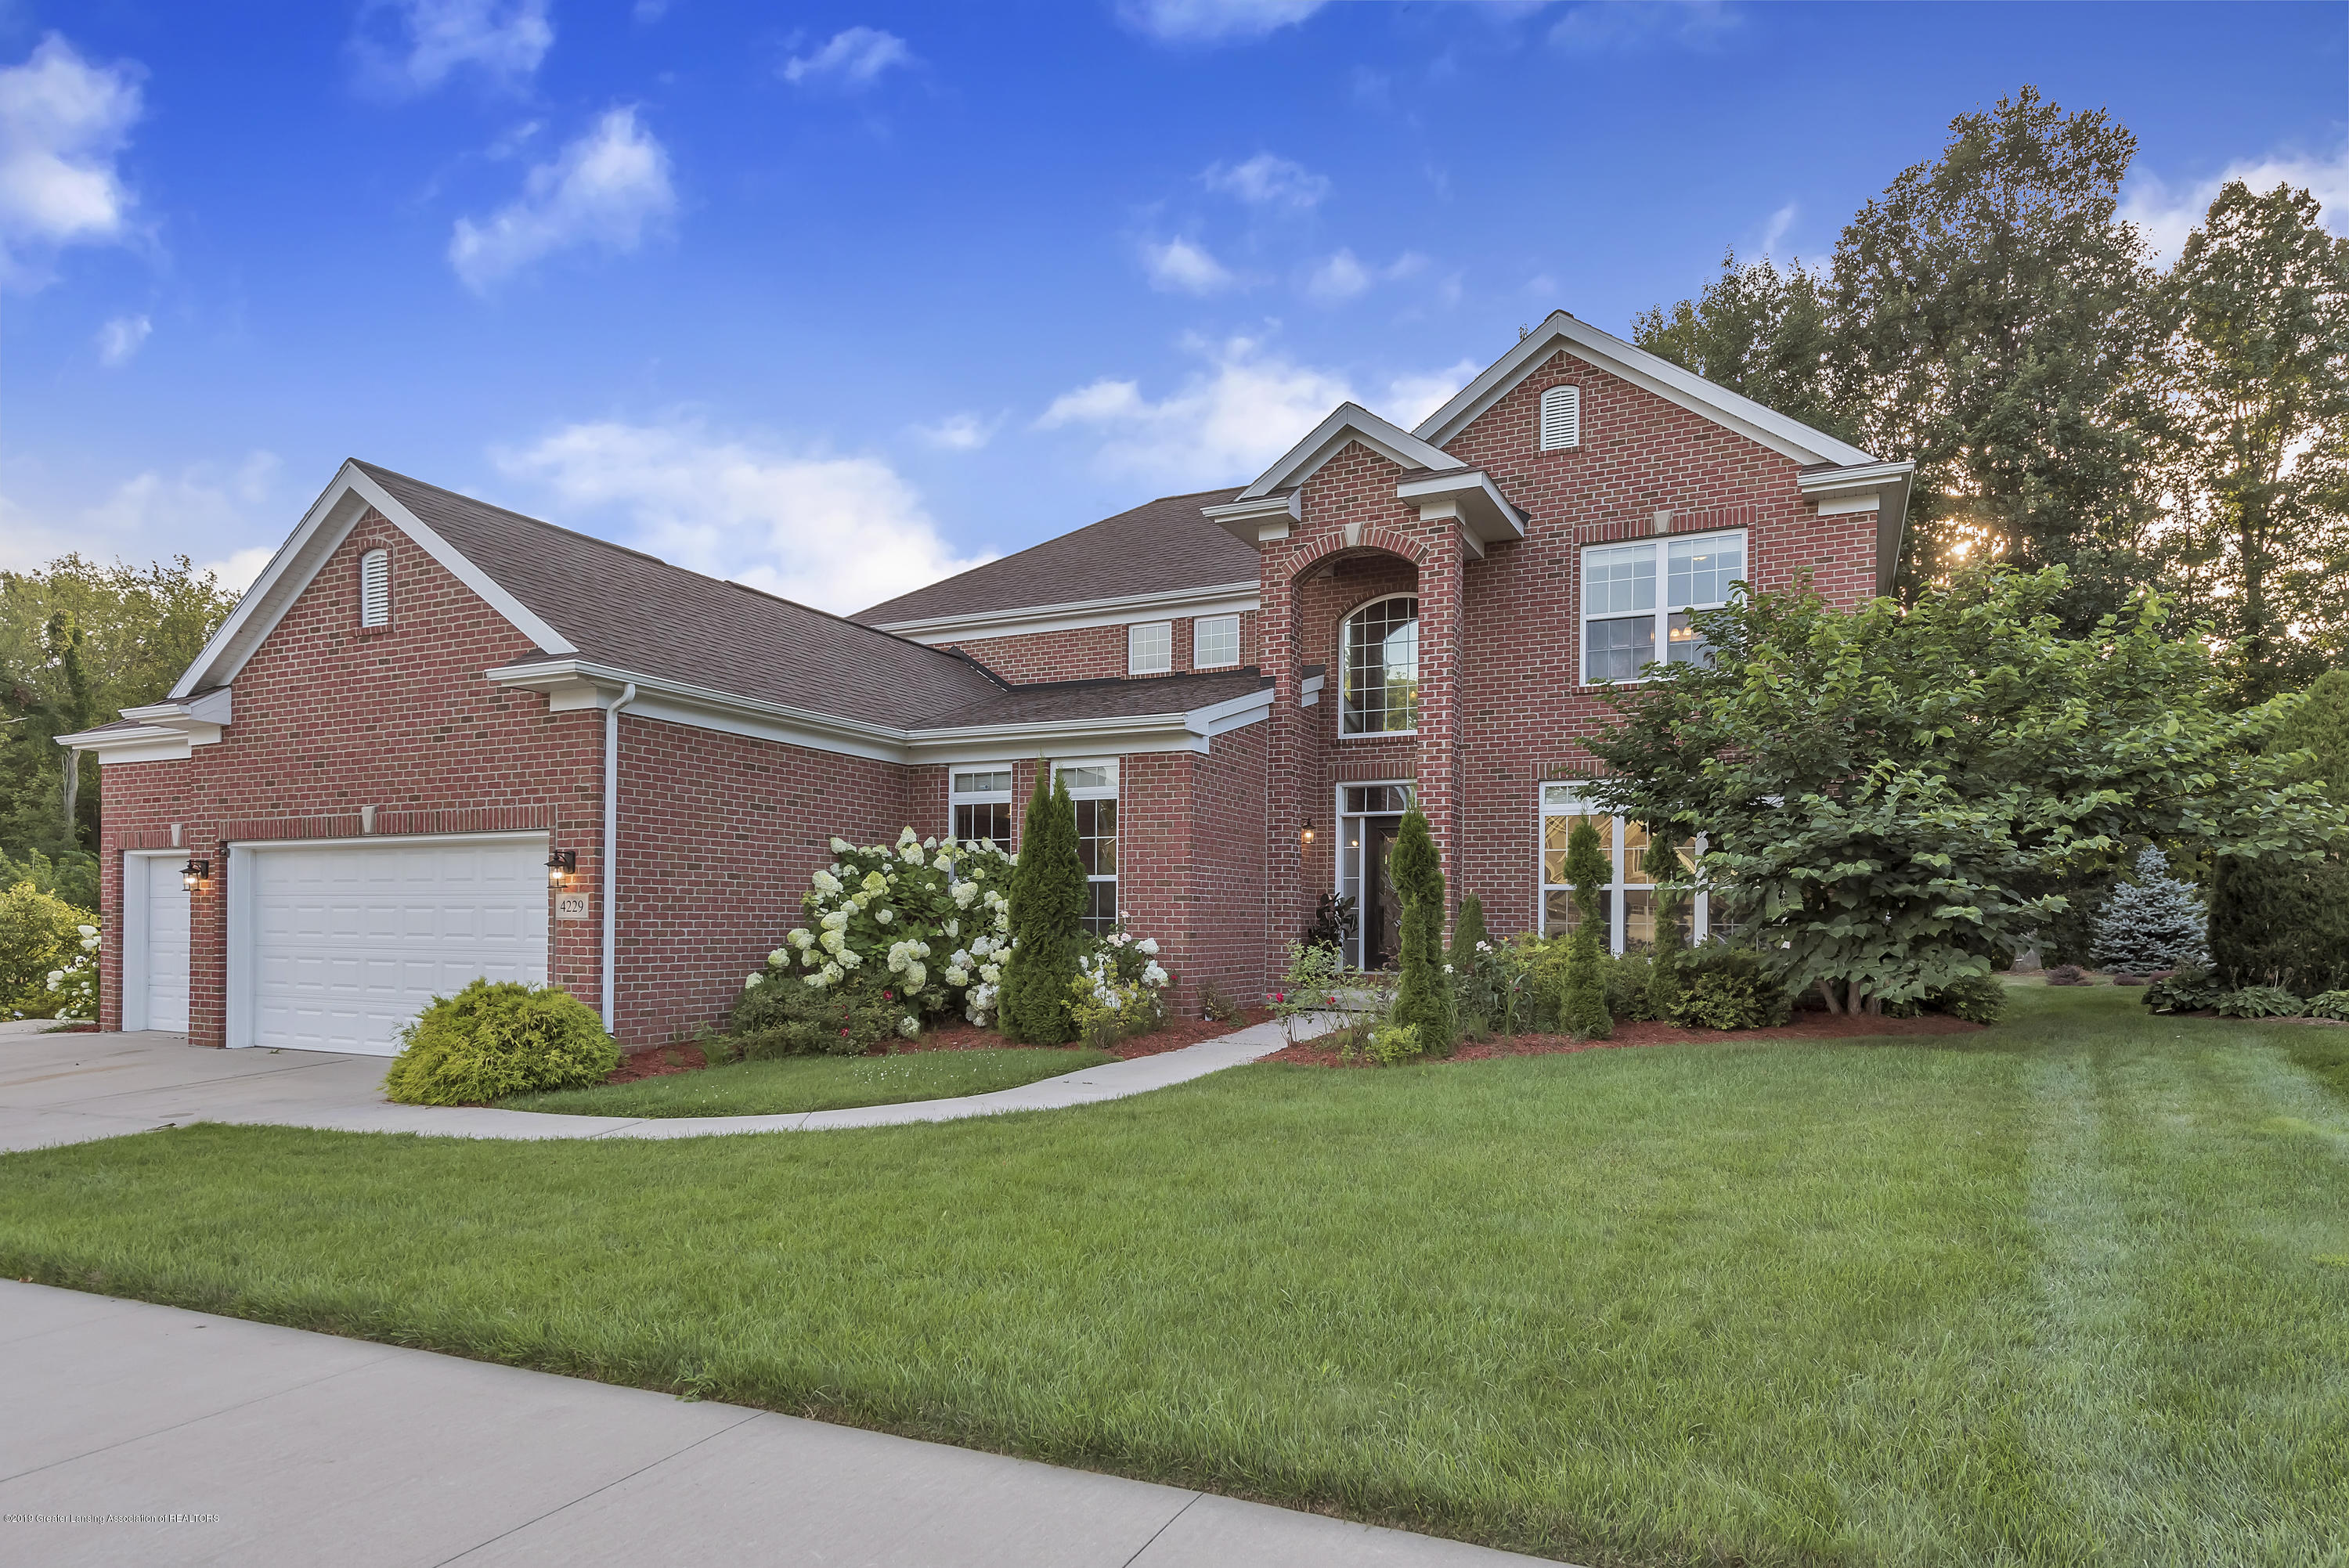 4229 Rain Forest Cir - 4229-Rainforest-Circle-Okemos-MI-windows - 4